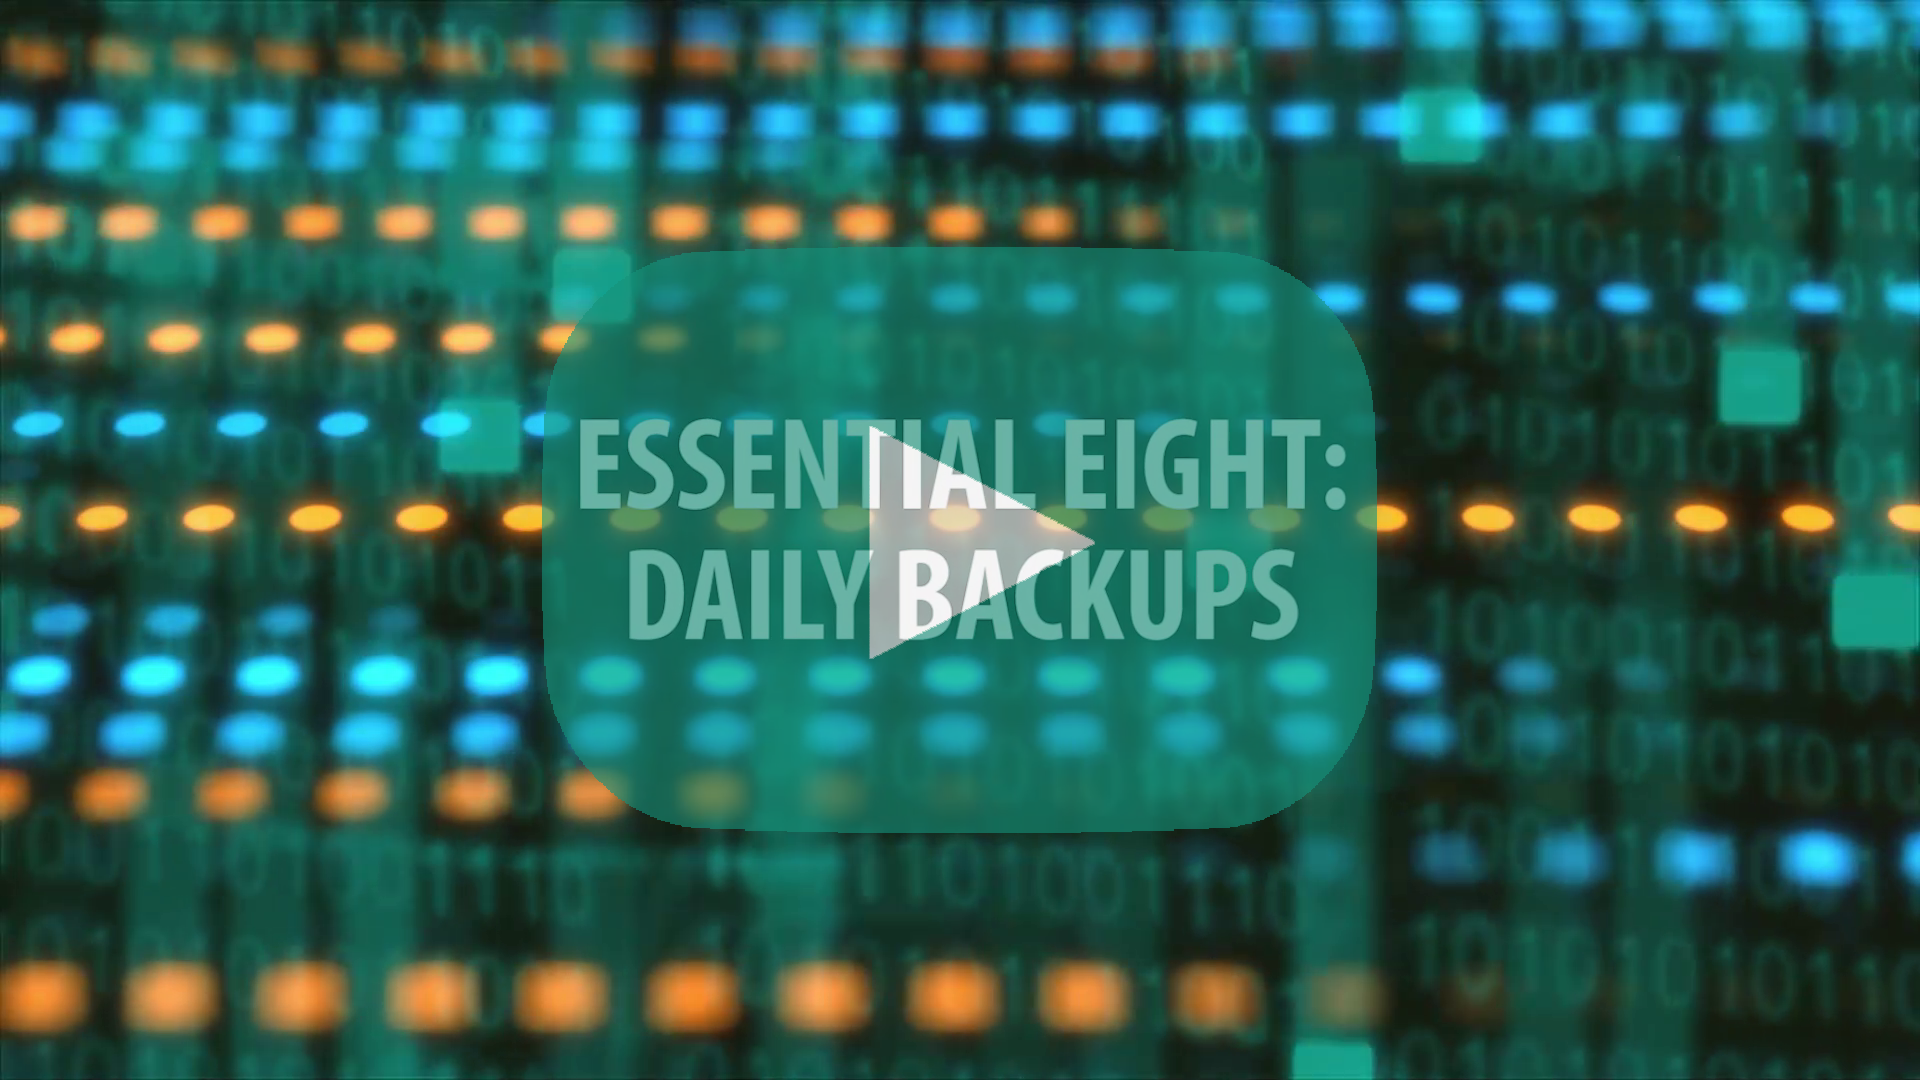 E8 Topic 2: Daily Backups